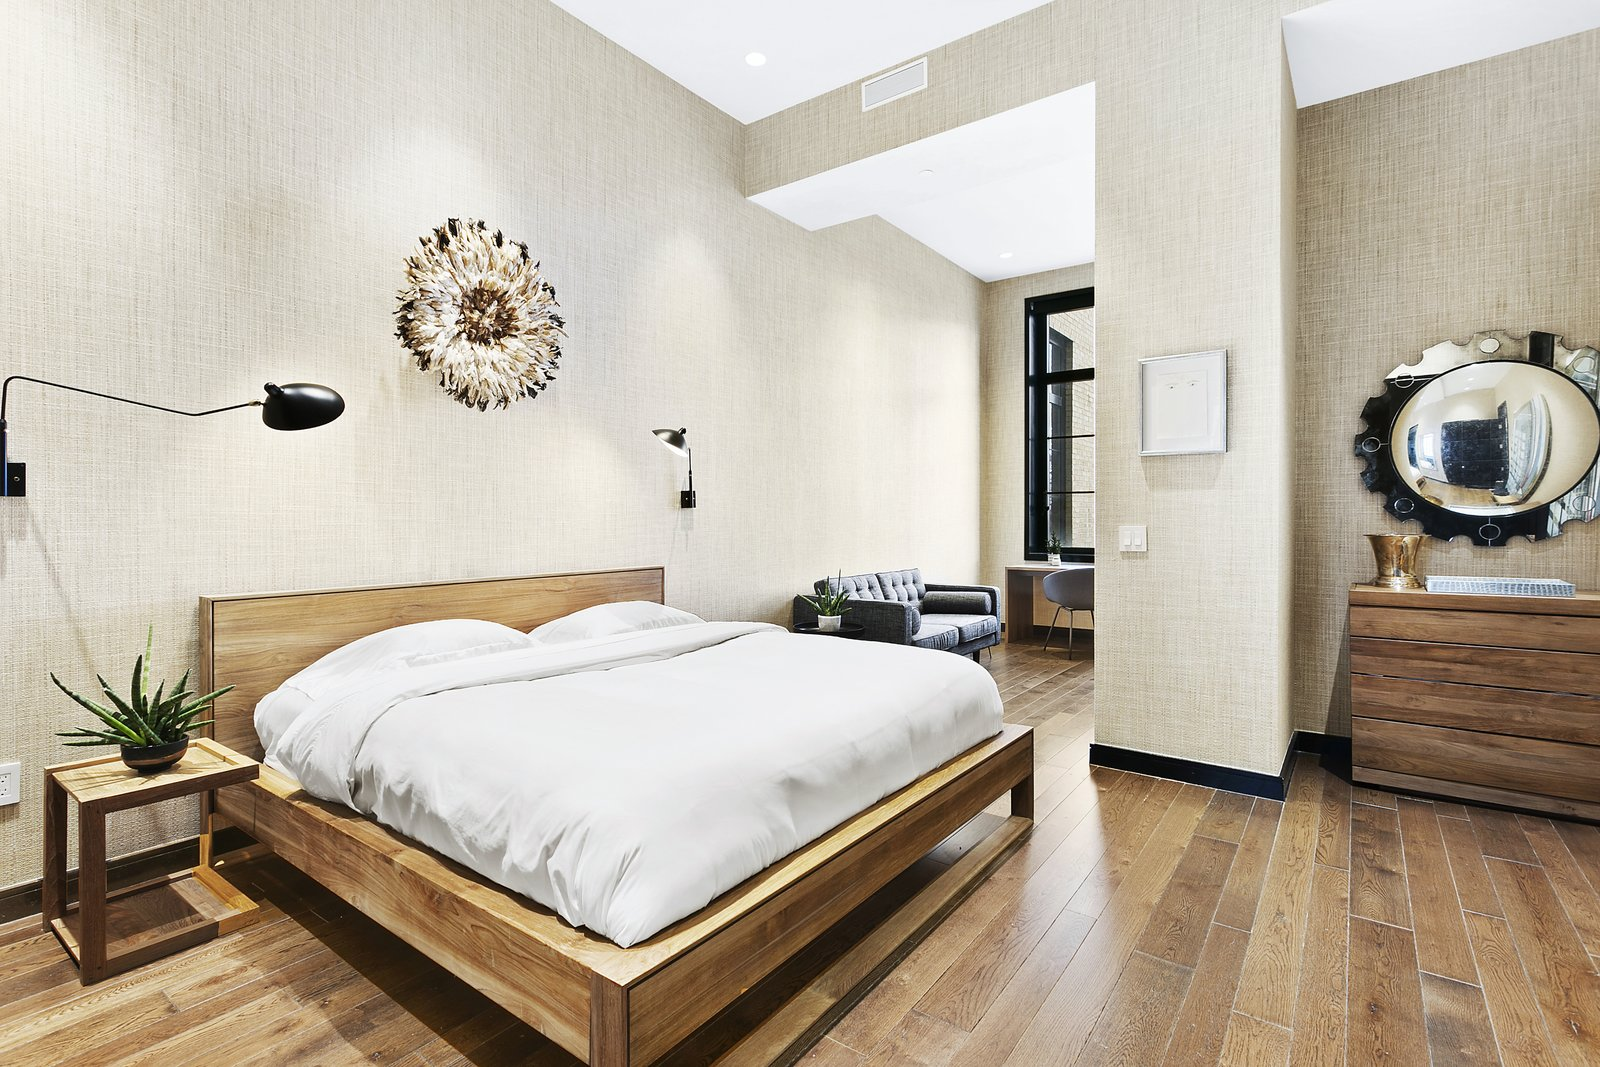 Bedroom, Night Stands, Bed, Dresser, Medium Hardwood Floor, and Wall Lighting The generous master suite contains an alcove perfect for a home office, entertainment space or nursery.   Expansive Pre-War Architecture Meets Stylish and Modern Living